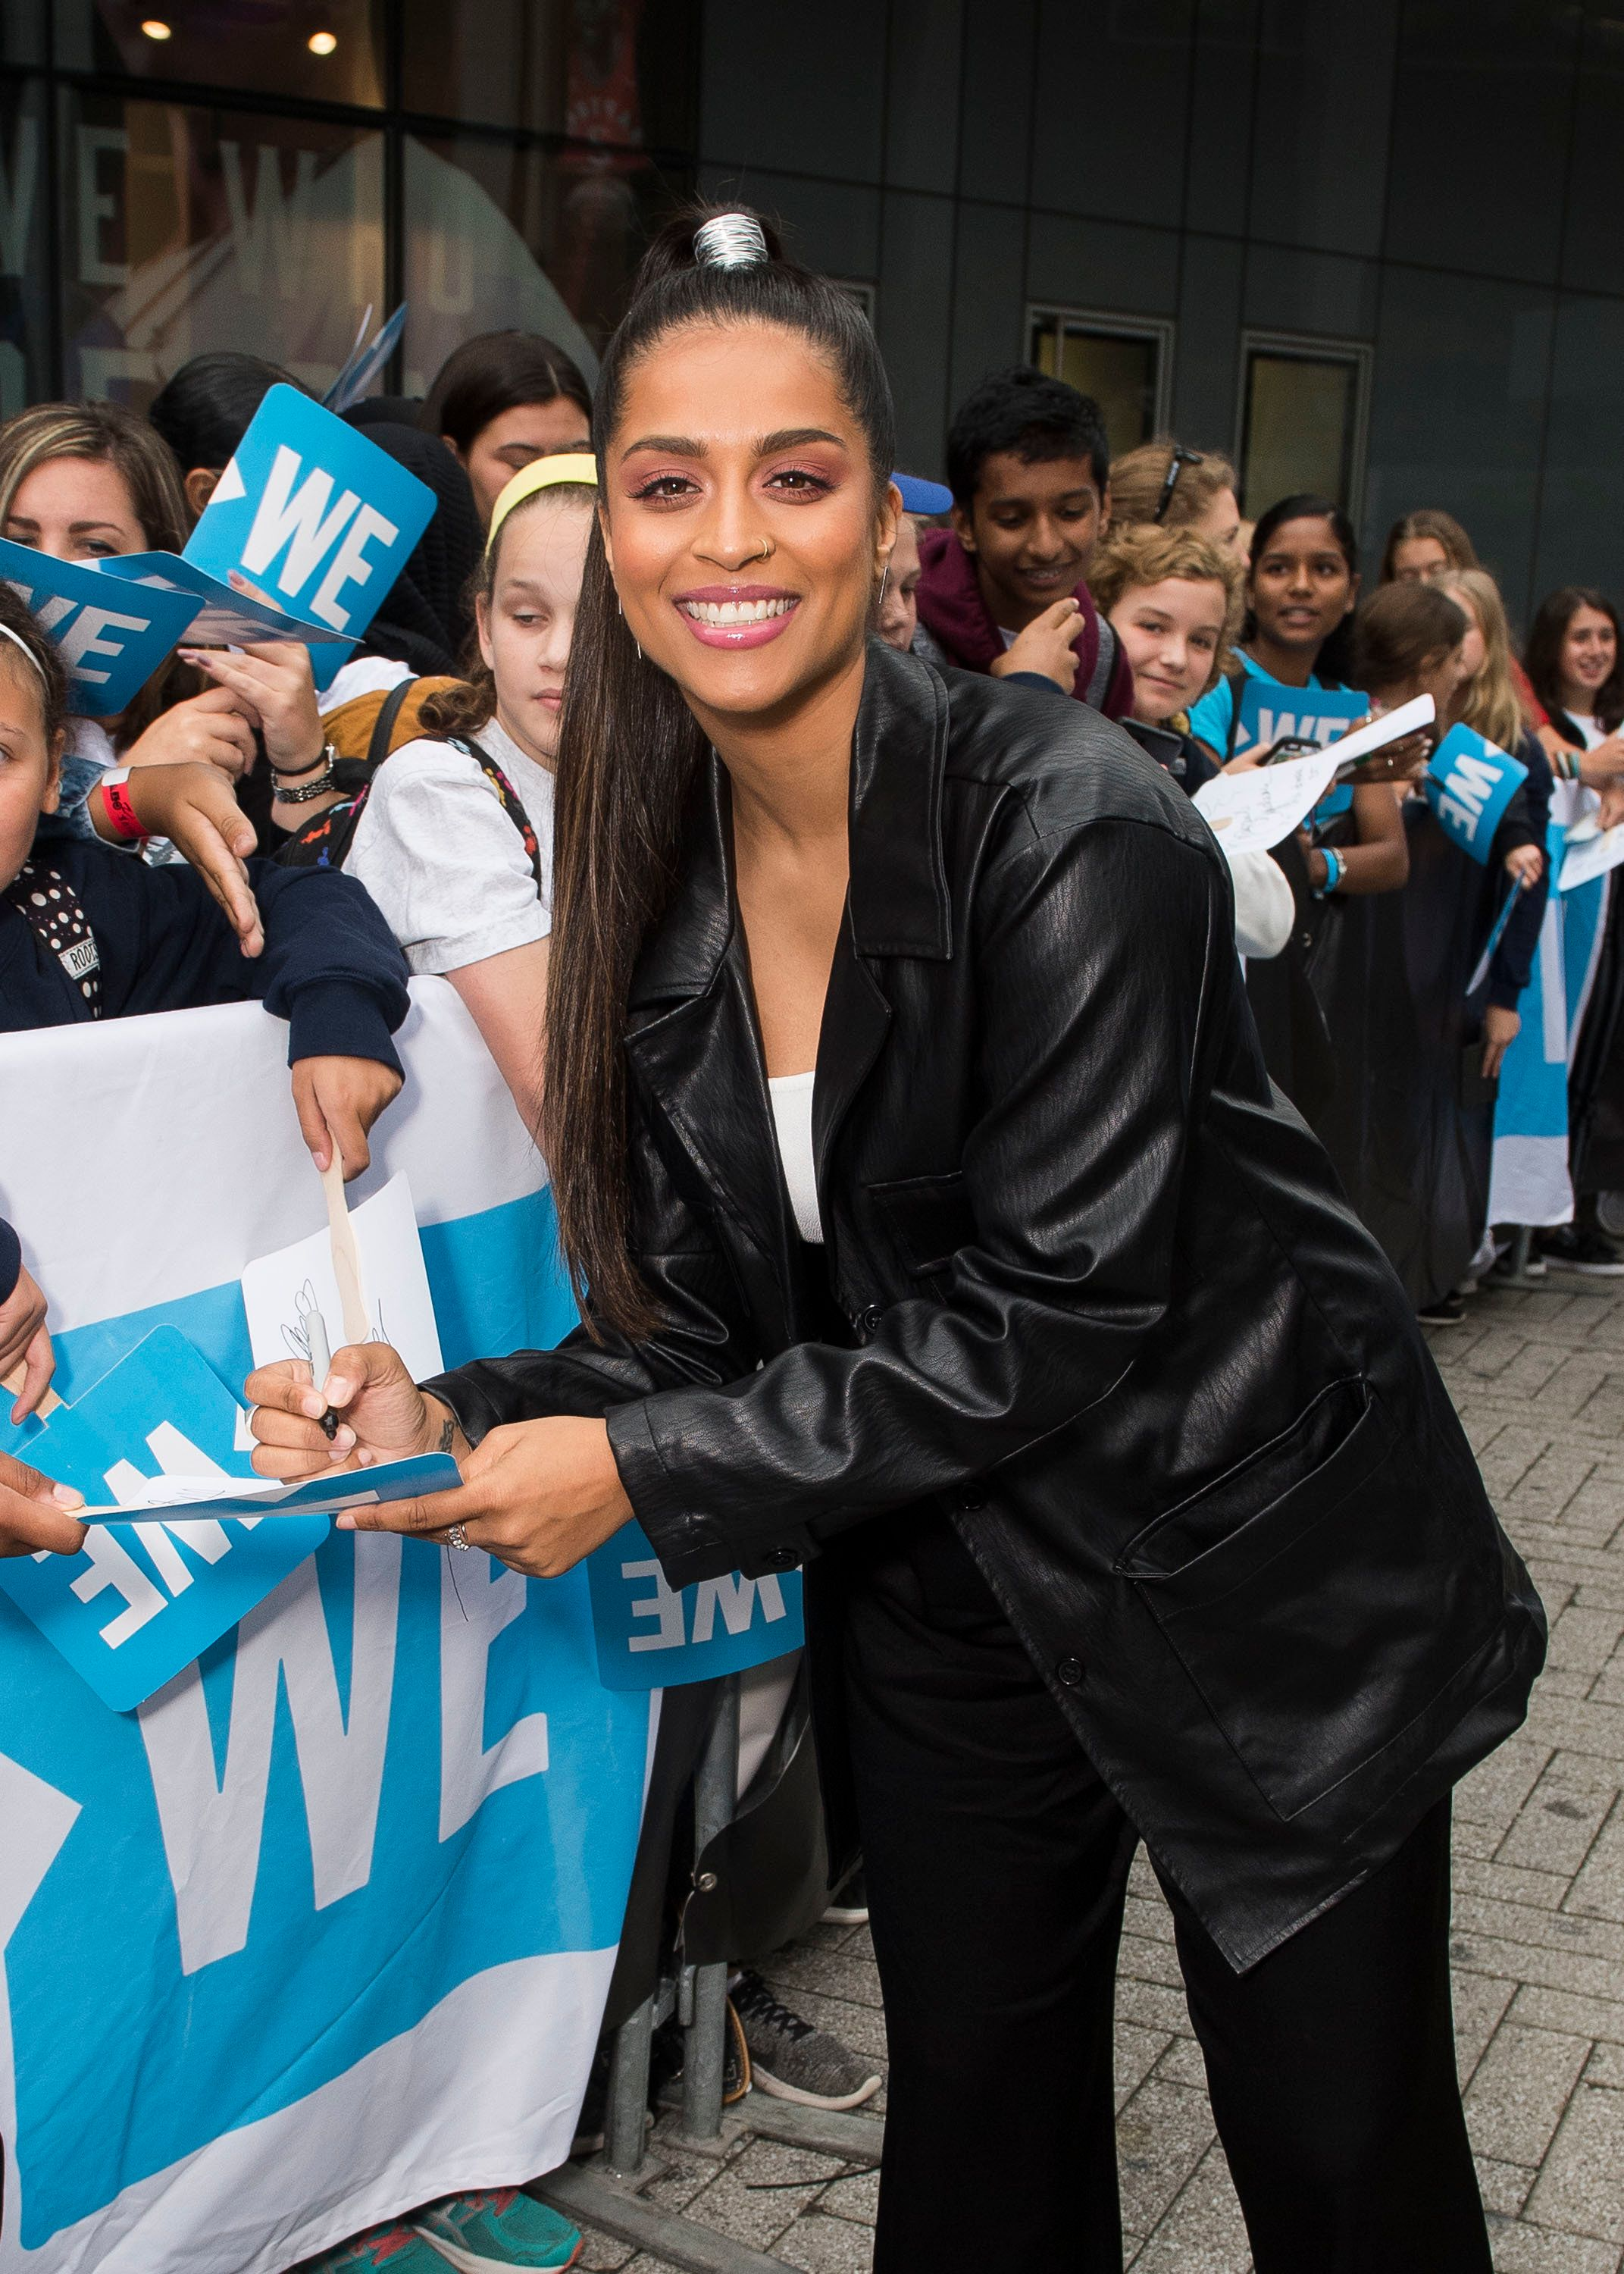 Lilly Singh arrives at WE Day on Thursday, Sept. 20, 2018, in Toronto. (Photo by Arthur Mola/Invision/AP)